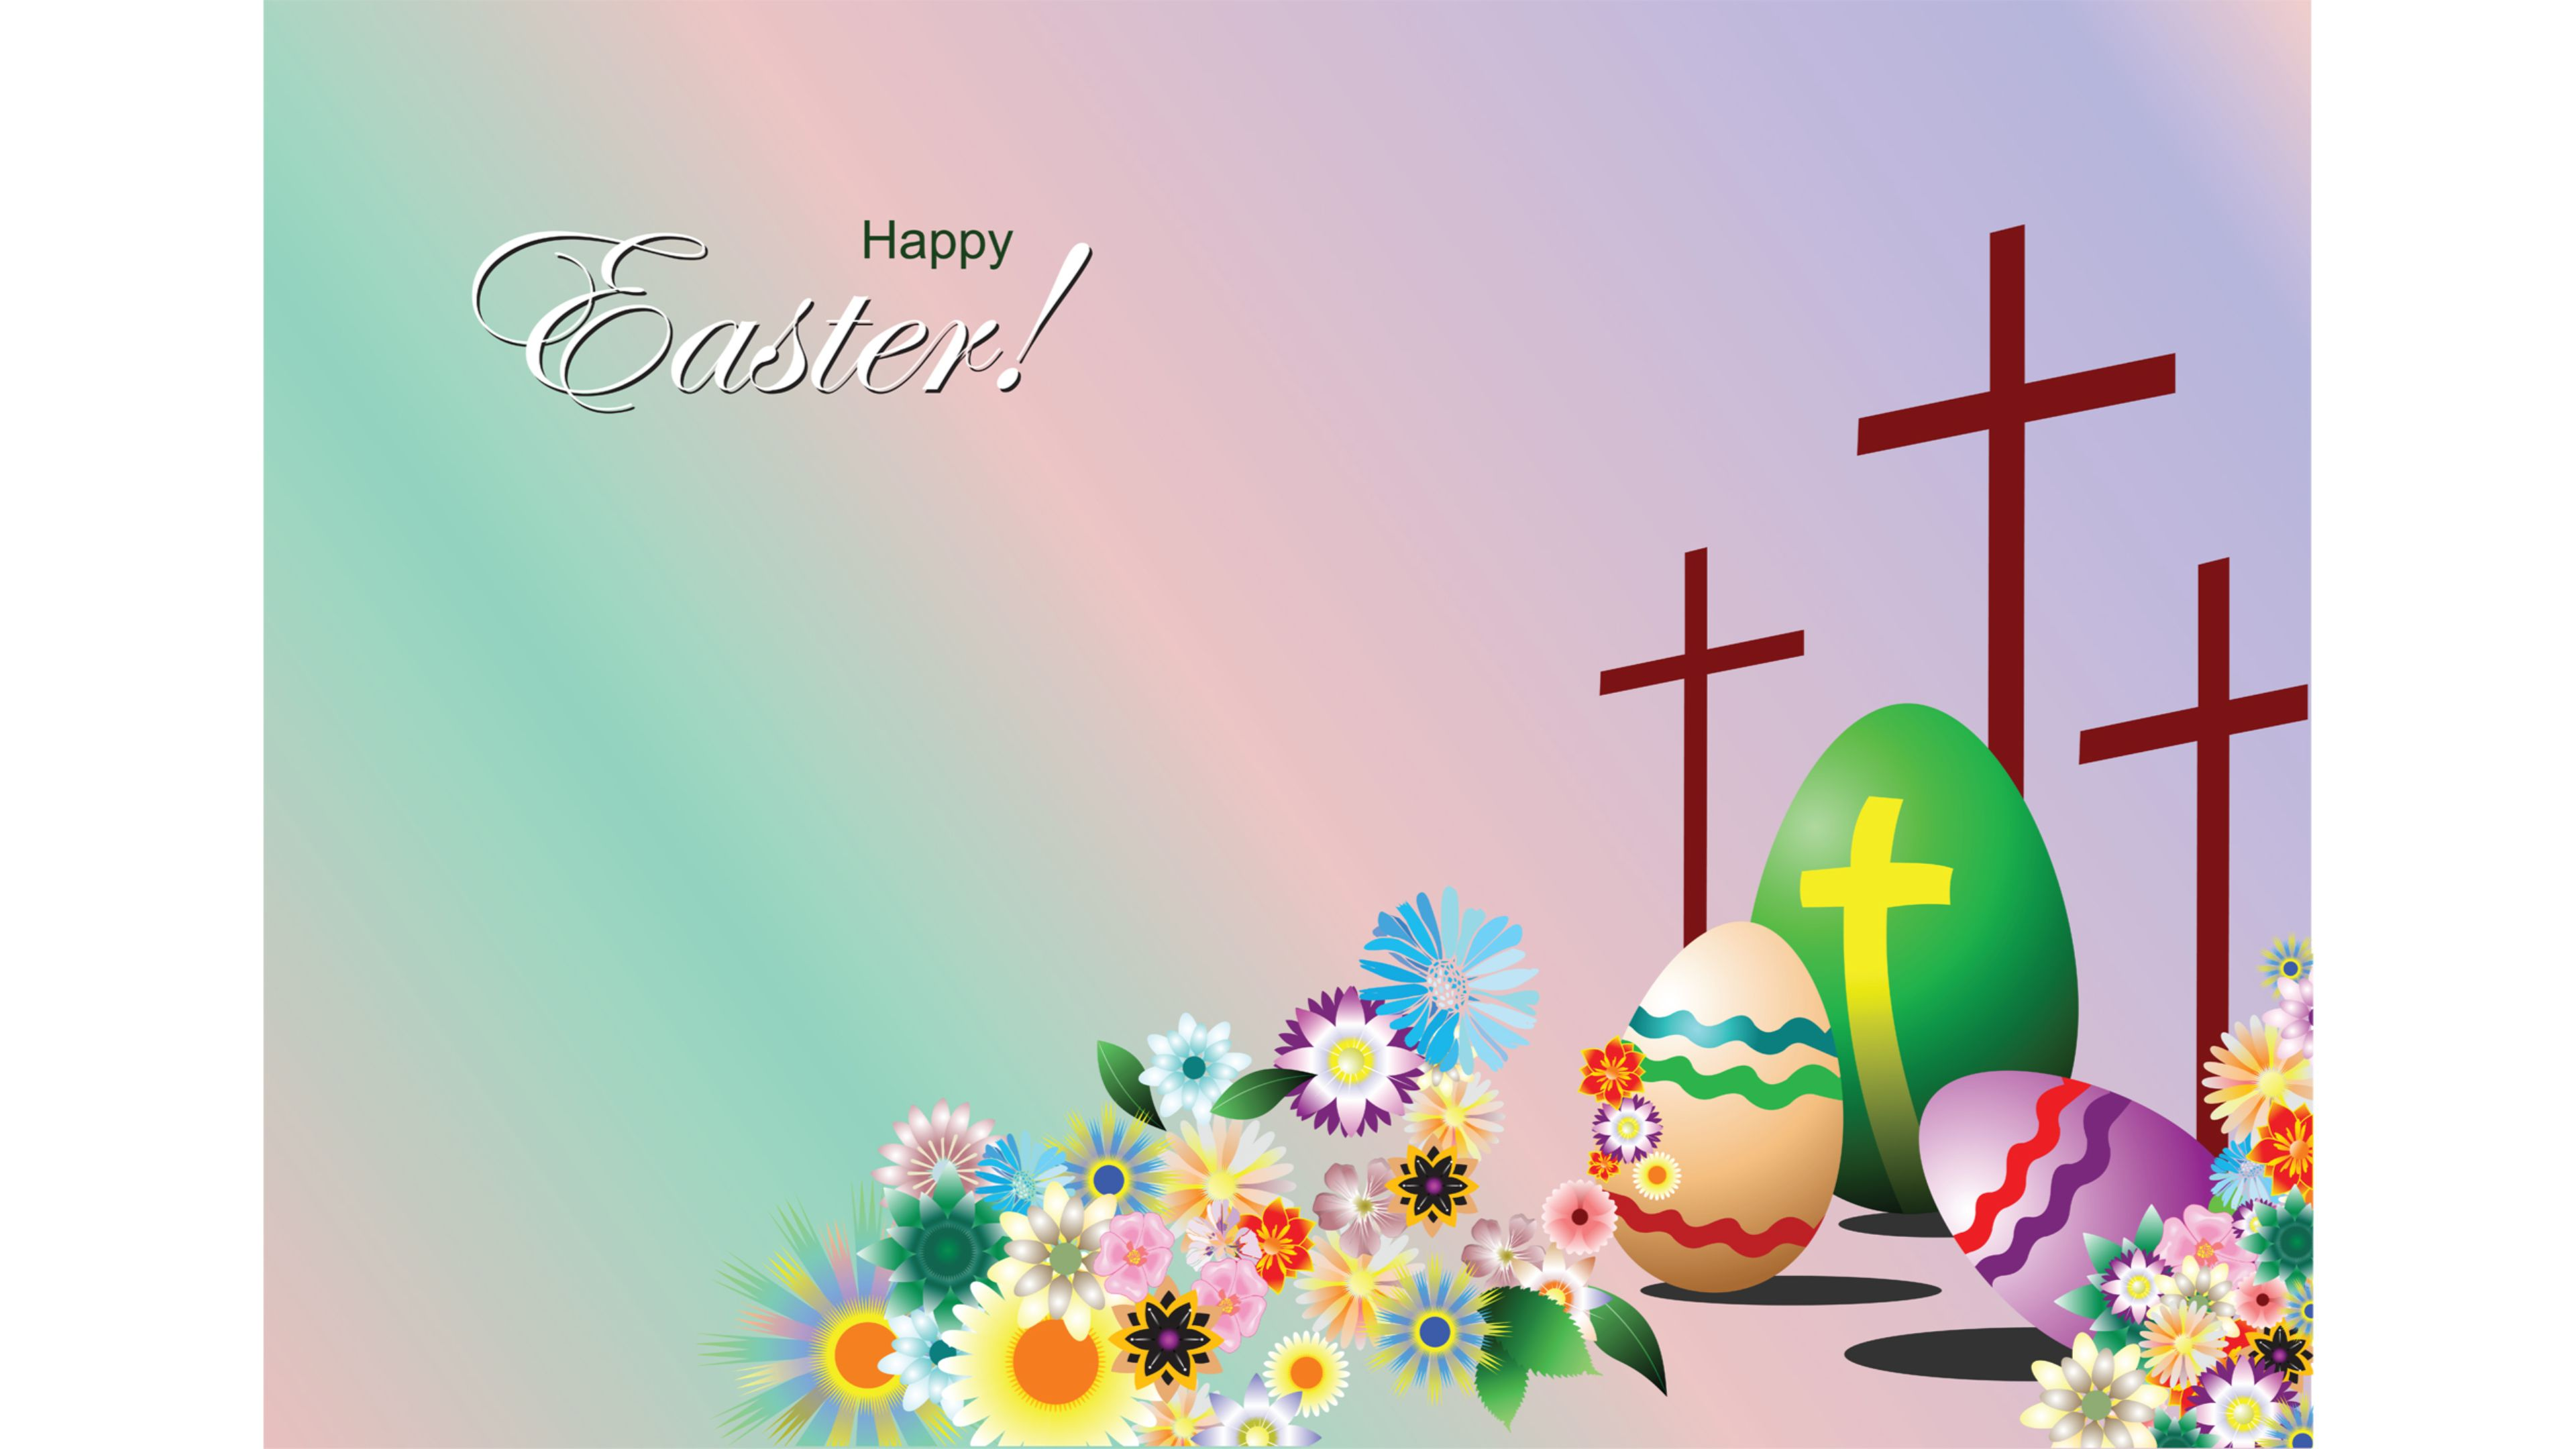 Free christian easter wallpaper wallpapersafari - Christian easter images free ...